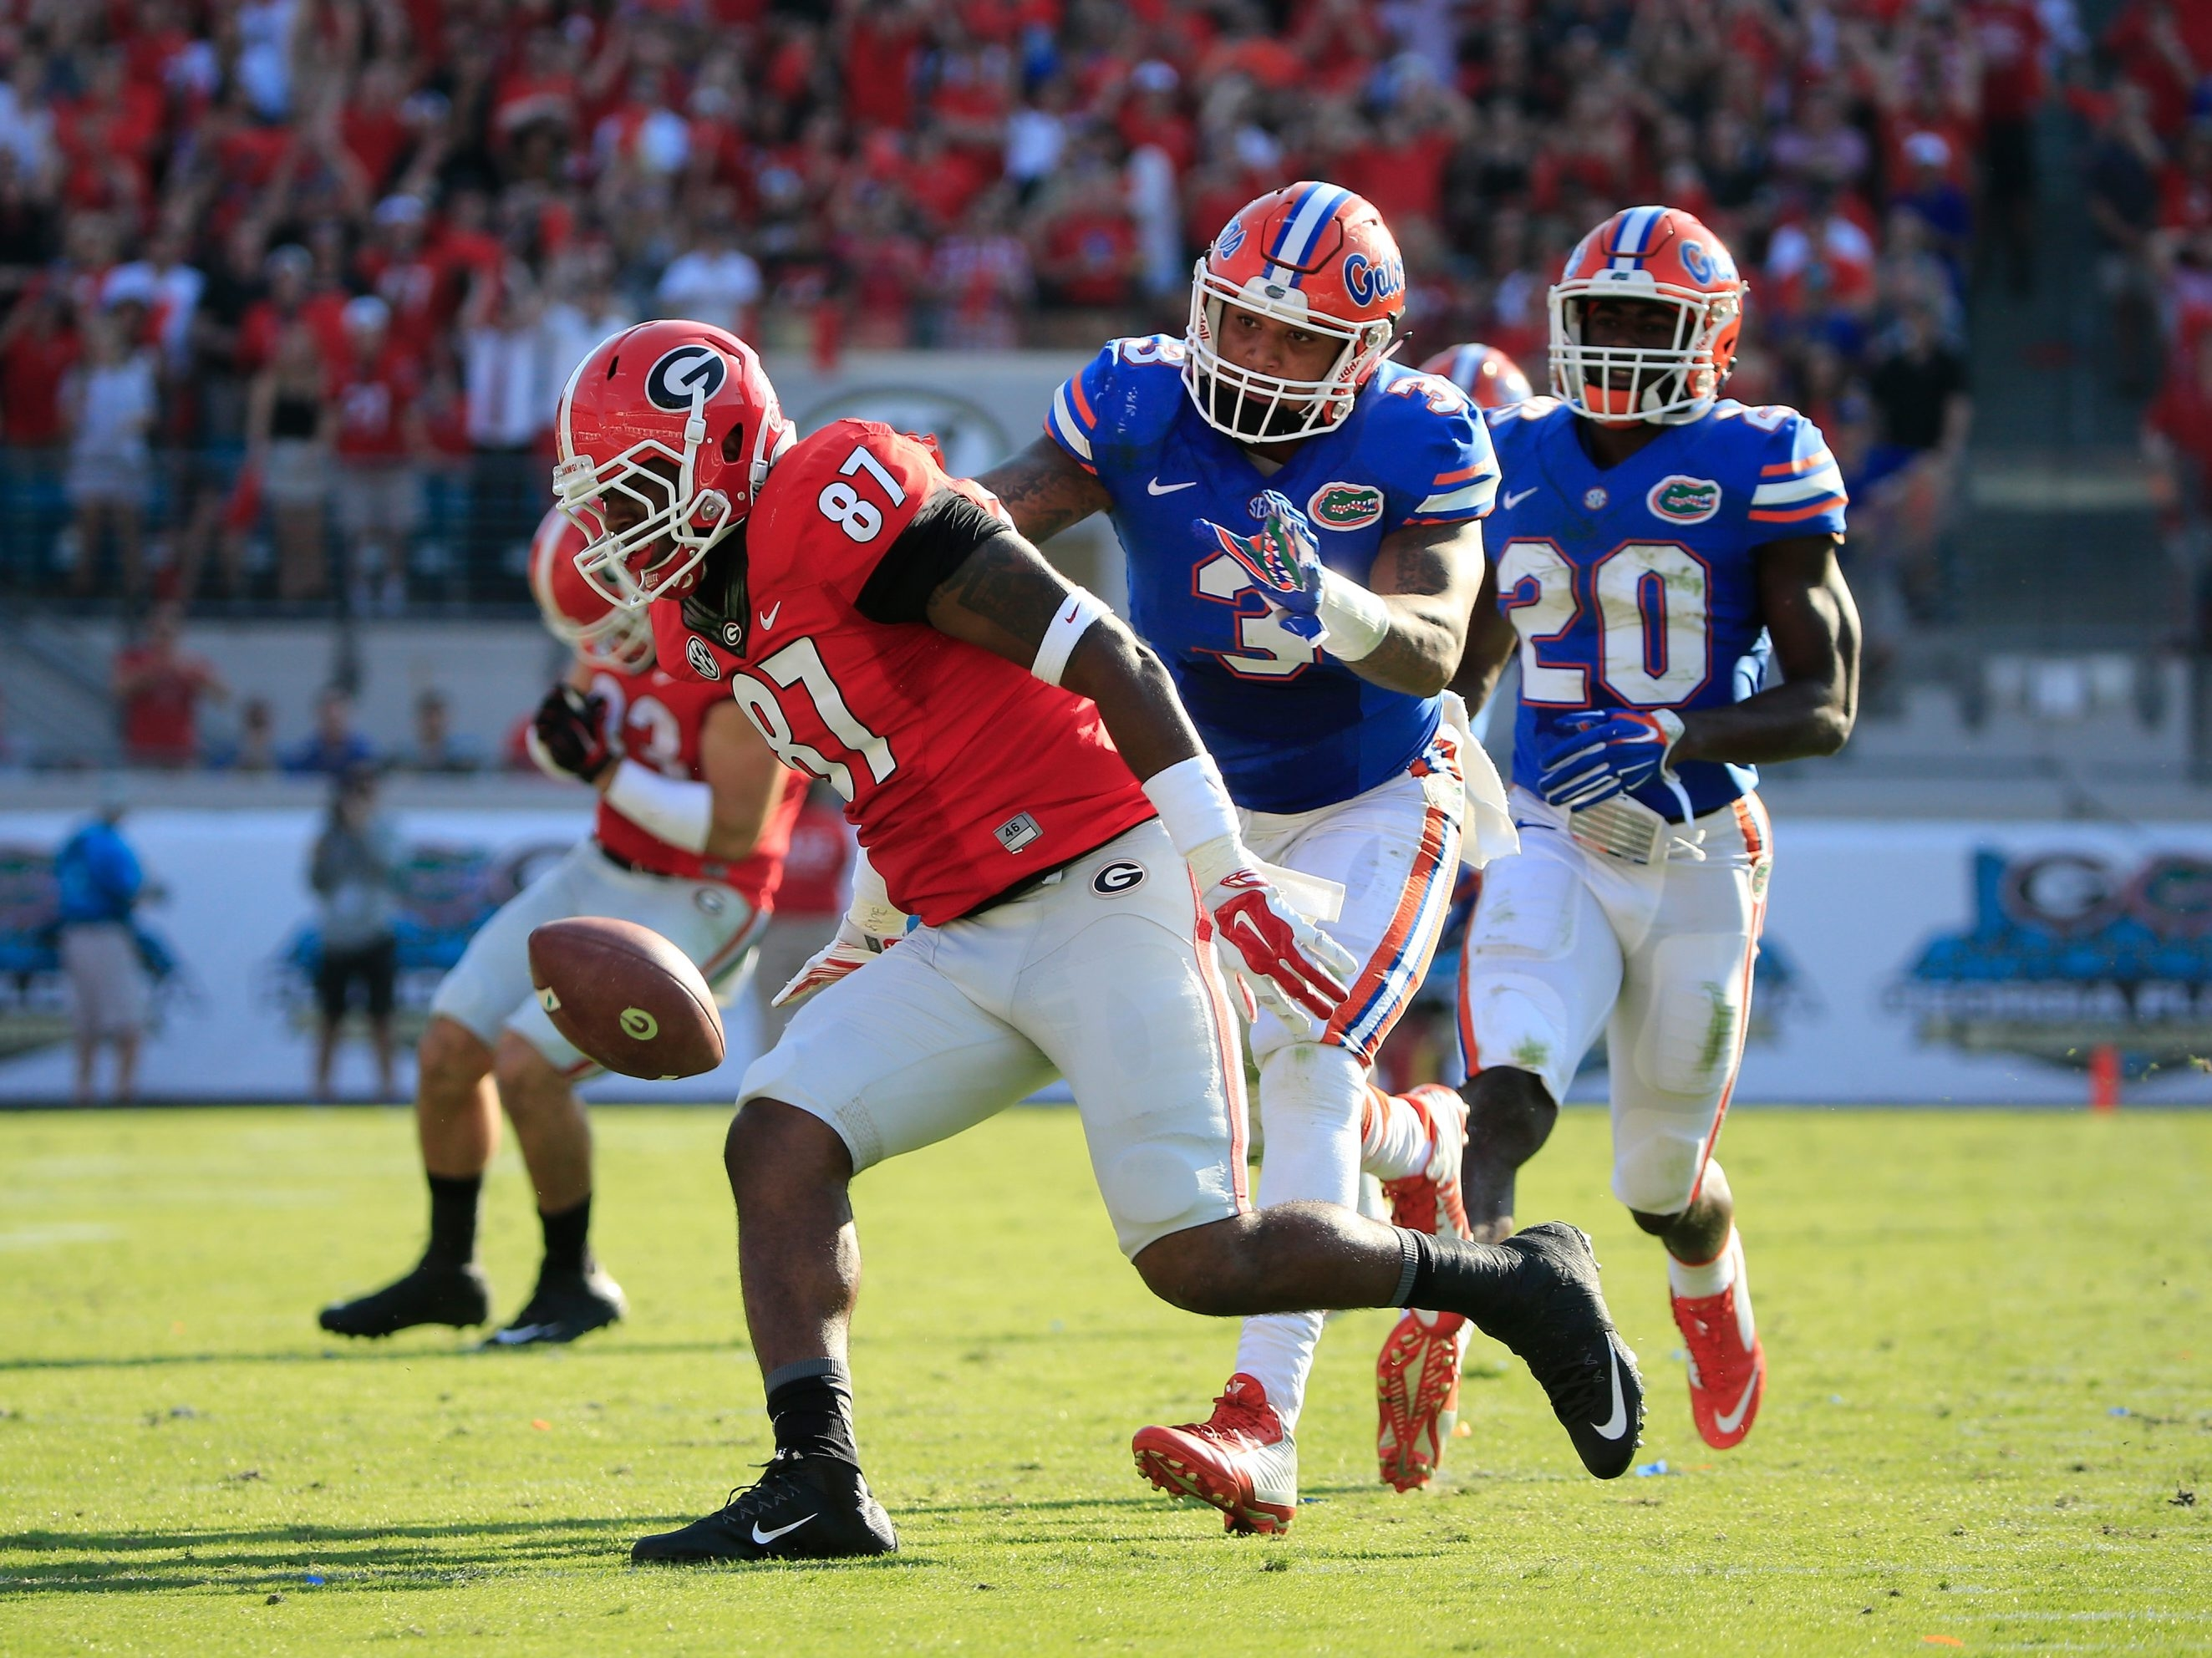 Georgia Bulldogs tight end Jay Rome (87) tries a reception against Florida Gators linebacker Antonio Morrison (3) at EverBank Field on Oct. 31 in Jacksonville, Fla.